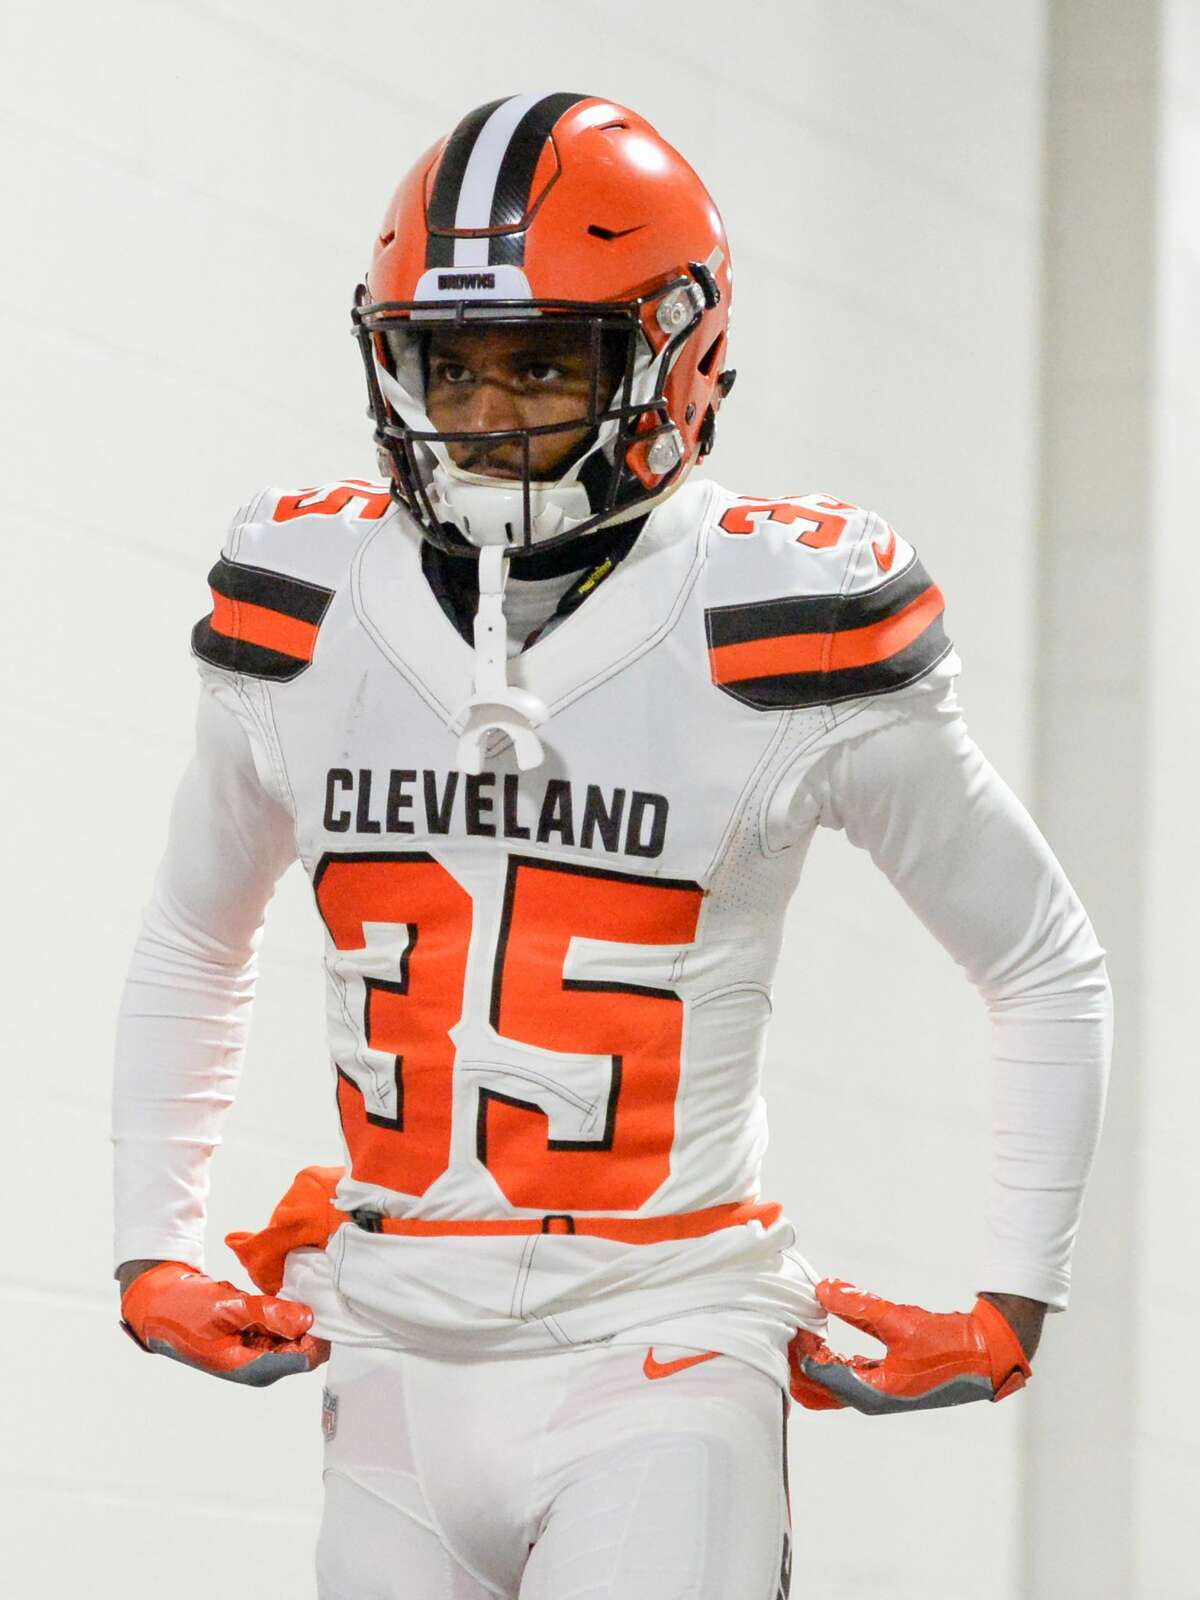 PITTSBURGH, PA - DECEMBER 31, 2017: Defensive back C.J. Smith #35 of the Cleveland Browns walks down the tunnel toward the field prior to a game on December 31, 2017 against the Pittsburgh Steelers at Heinz Field in Pittsburgh, Pennsylvania. Pittsburgh won 28-24. (Photo by: 2017 Nick Cammett/Diamond Images/Getty Images)